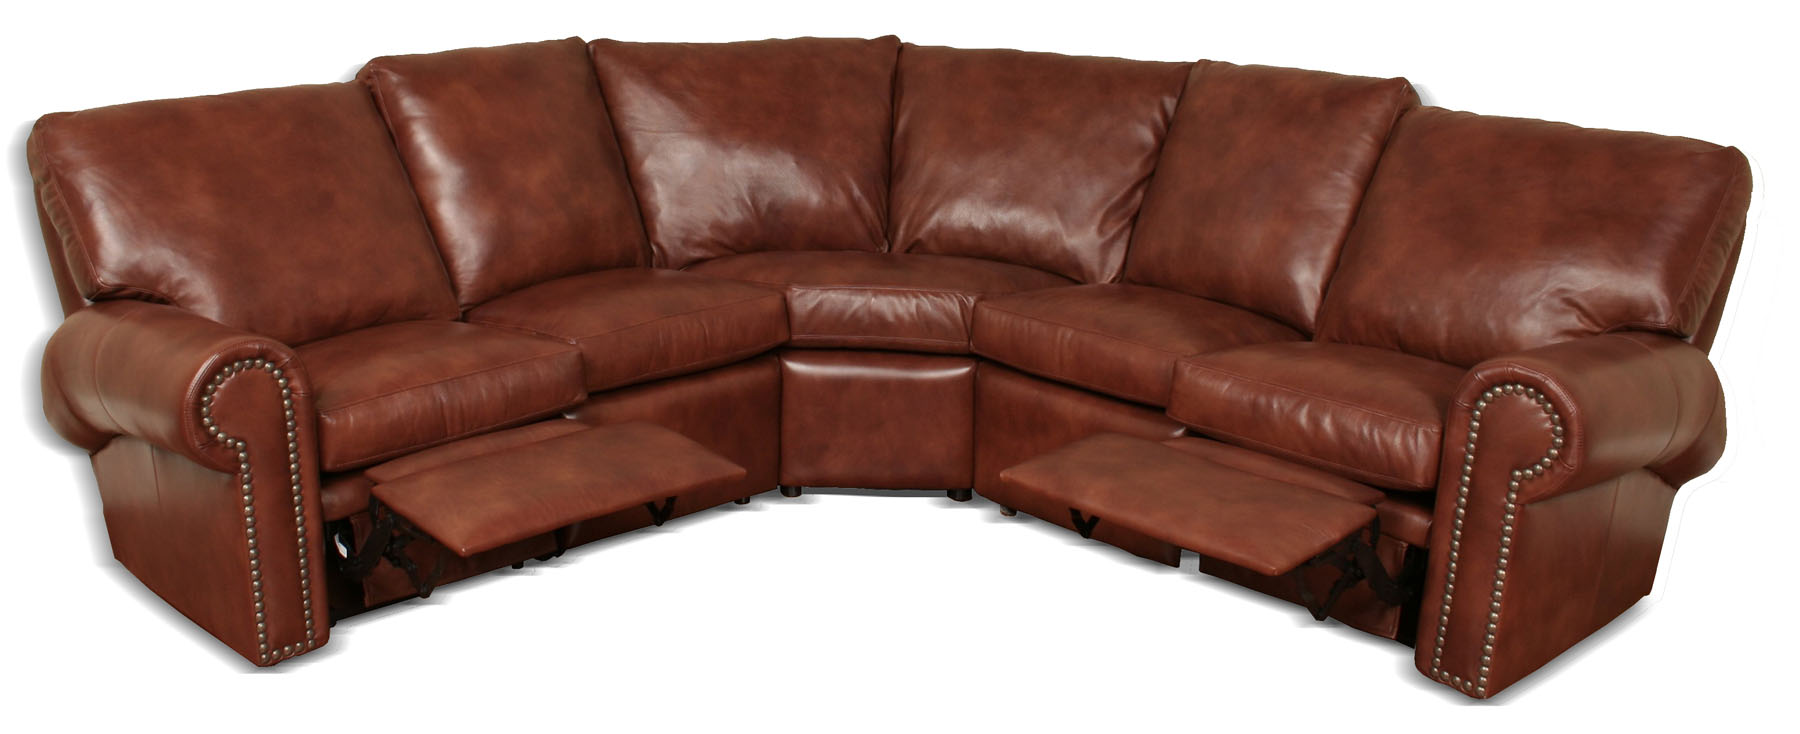 Phoenix reclining leather sectional for Reclining sectional sofa with ottoman